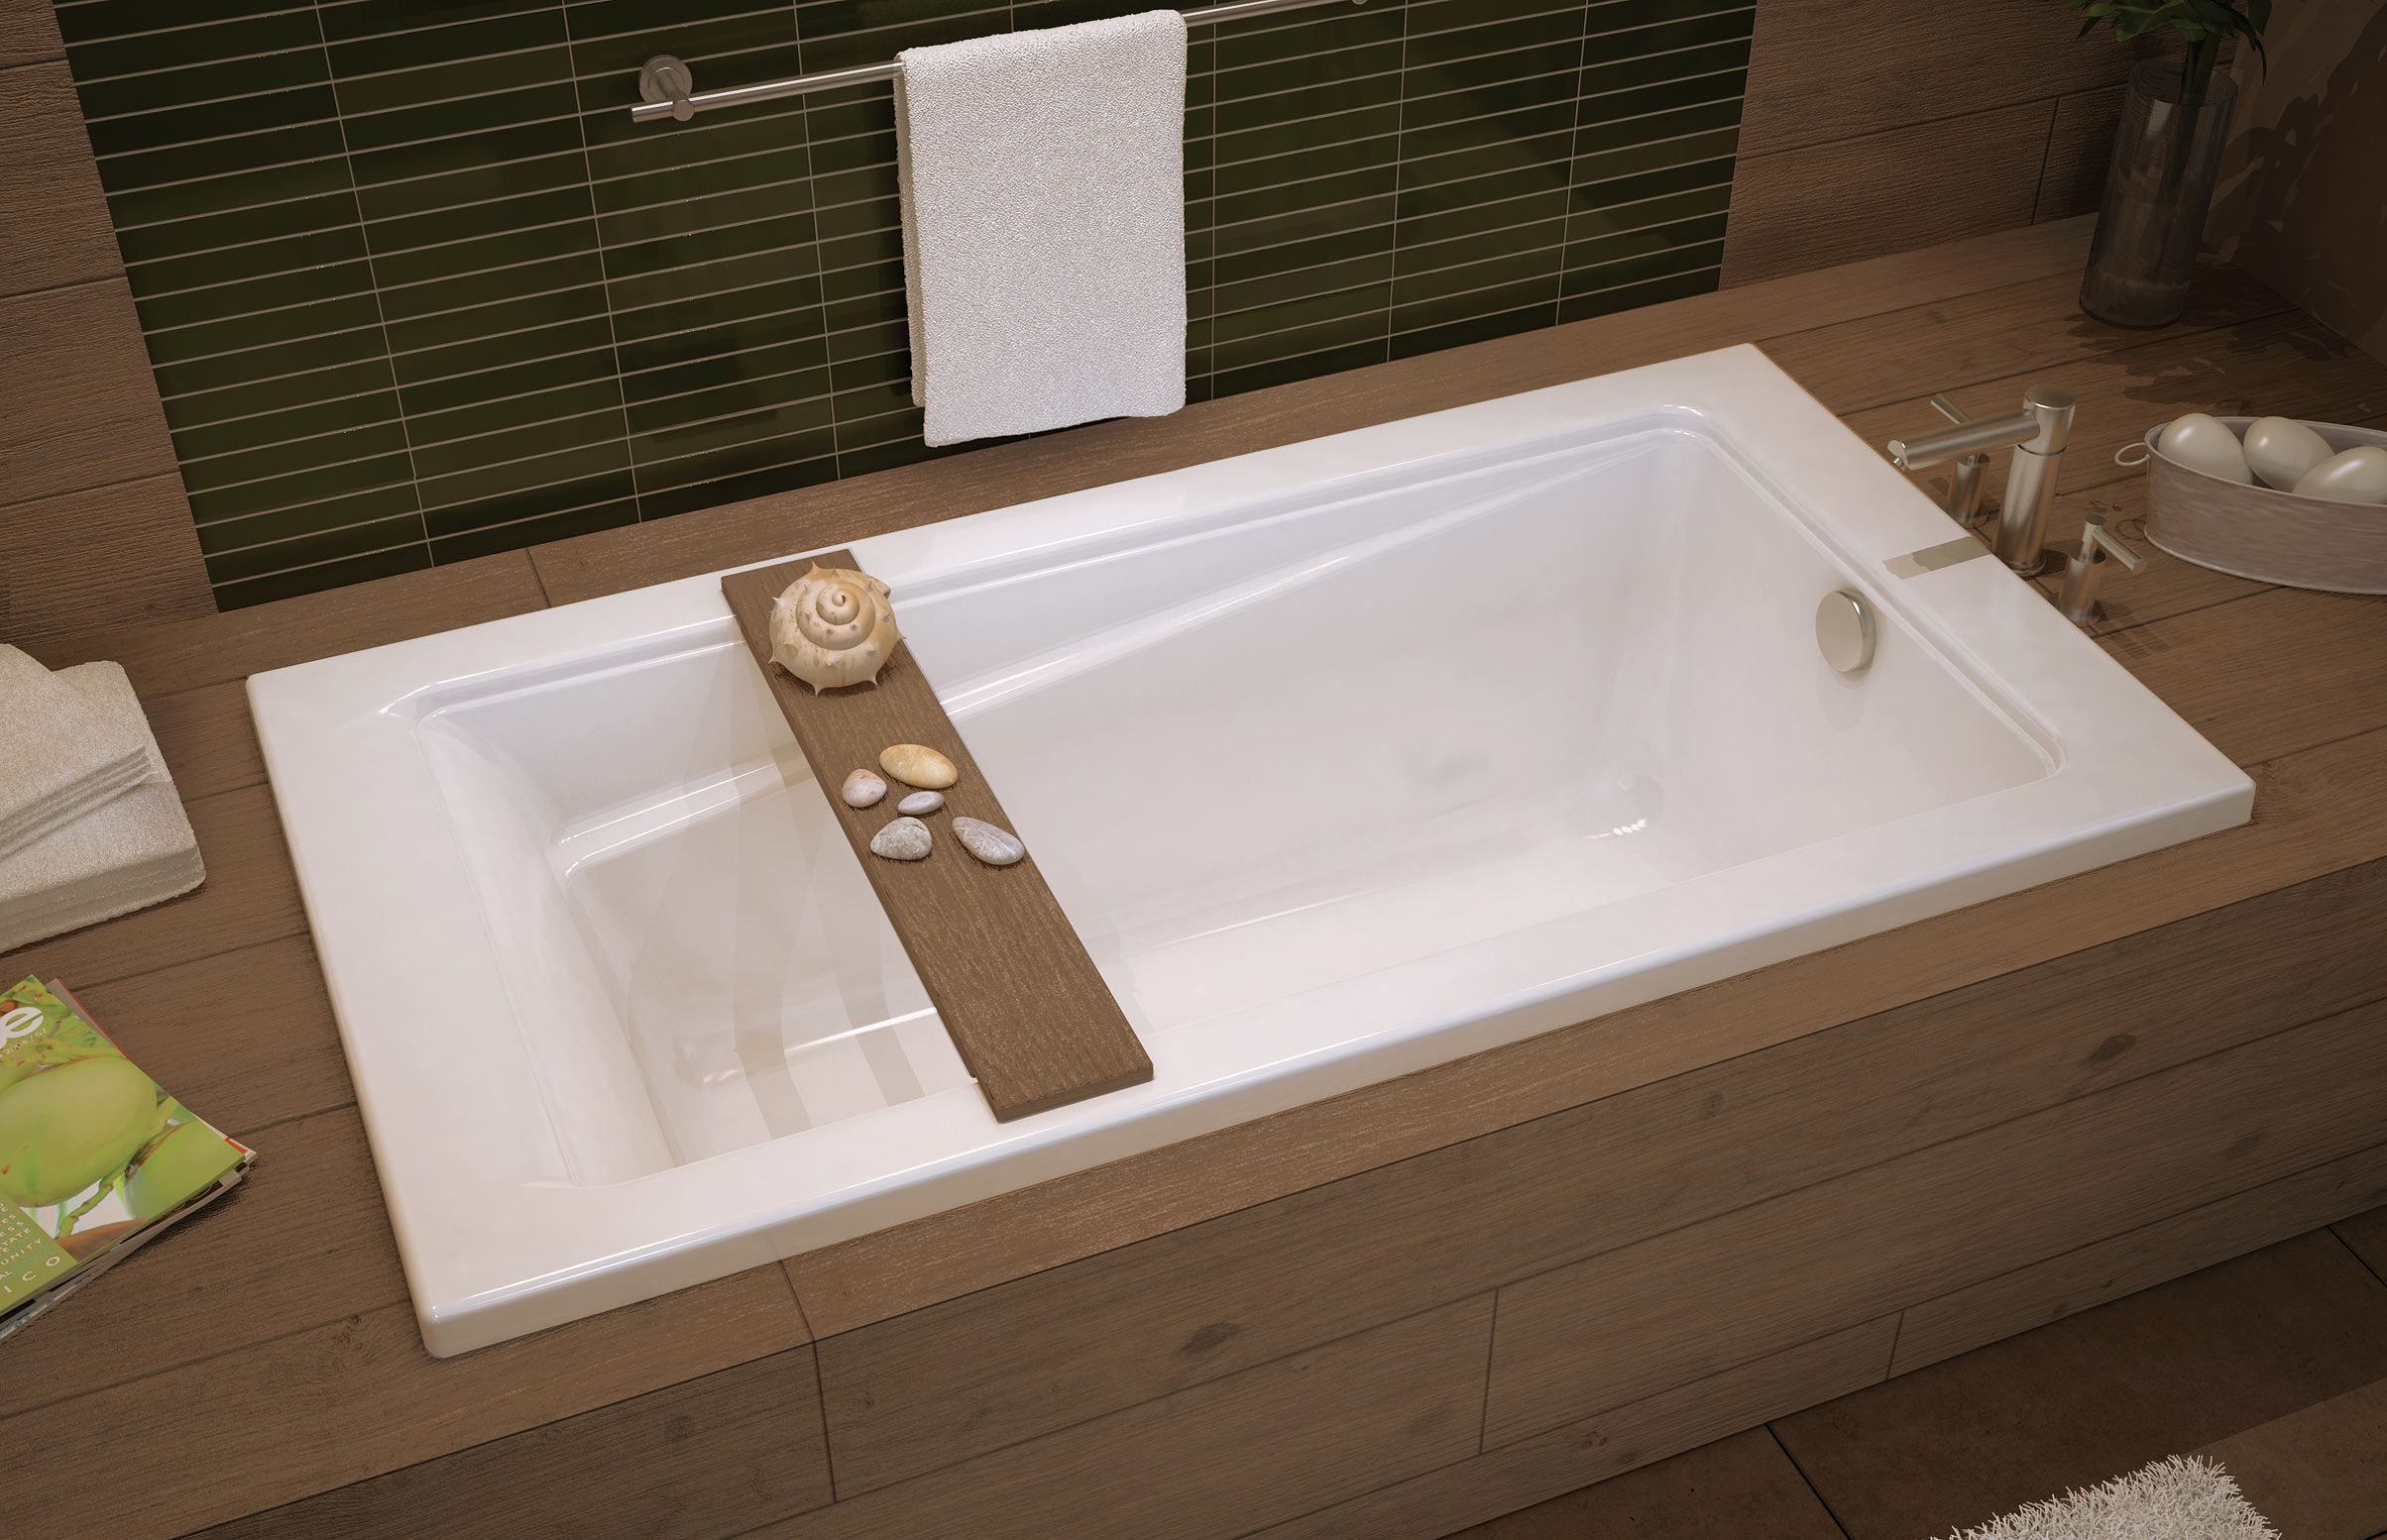 EXHIBIT Drop-in bathtub - MAAX Professional - EXHIBIT 6032 - 105513 ...